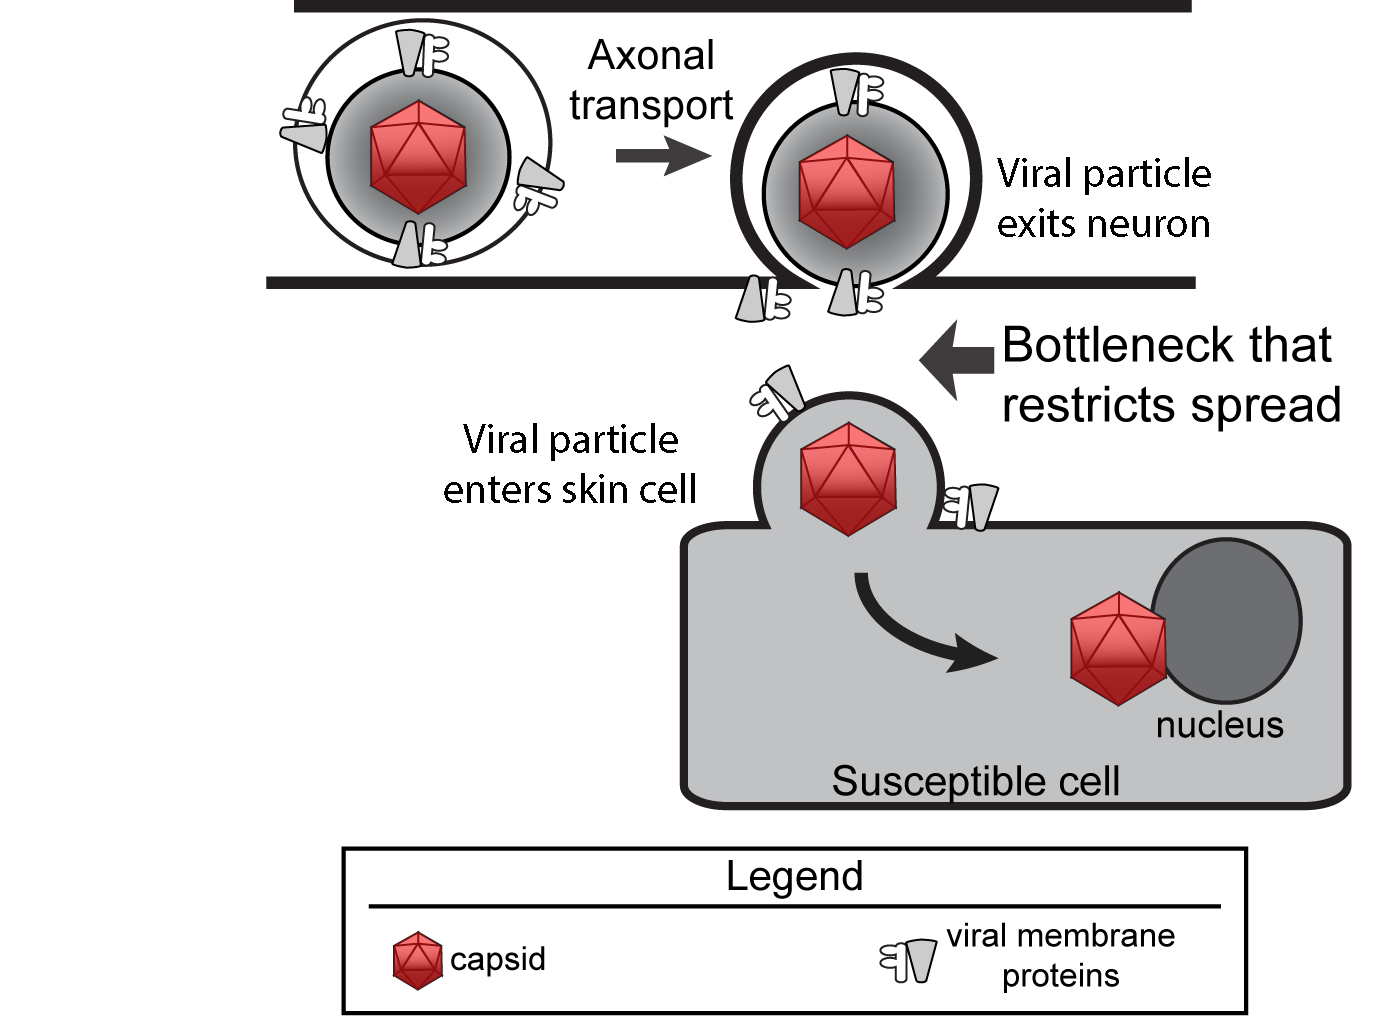 researchers identify unexpected bottleneck in the spread